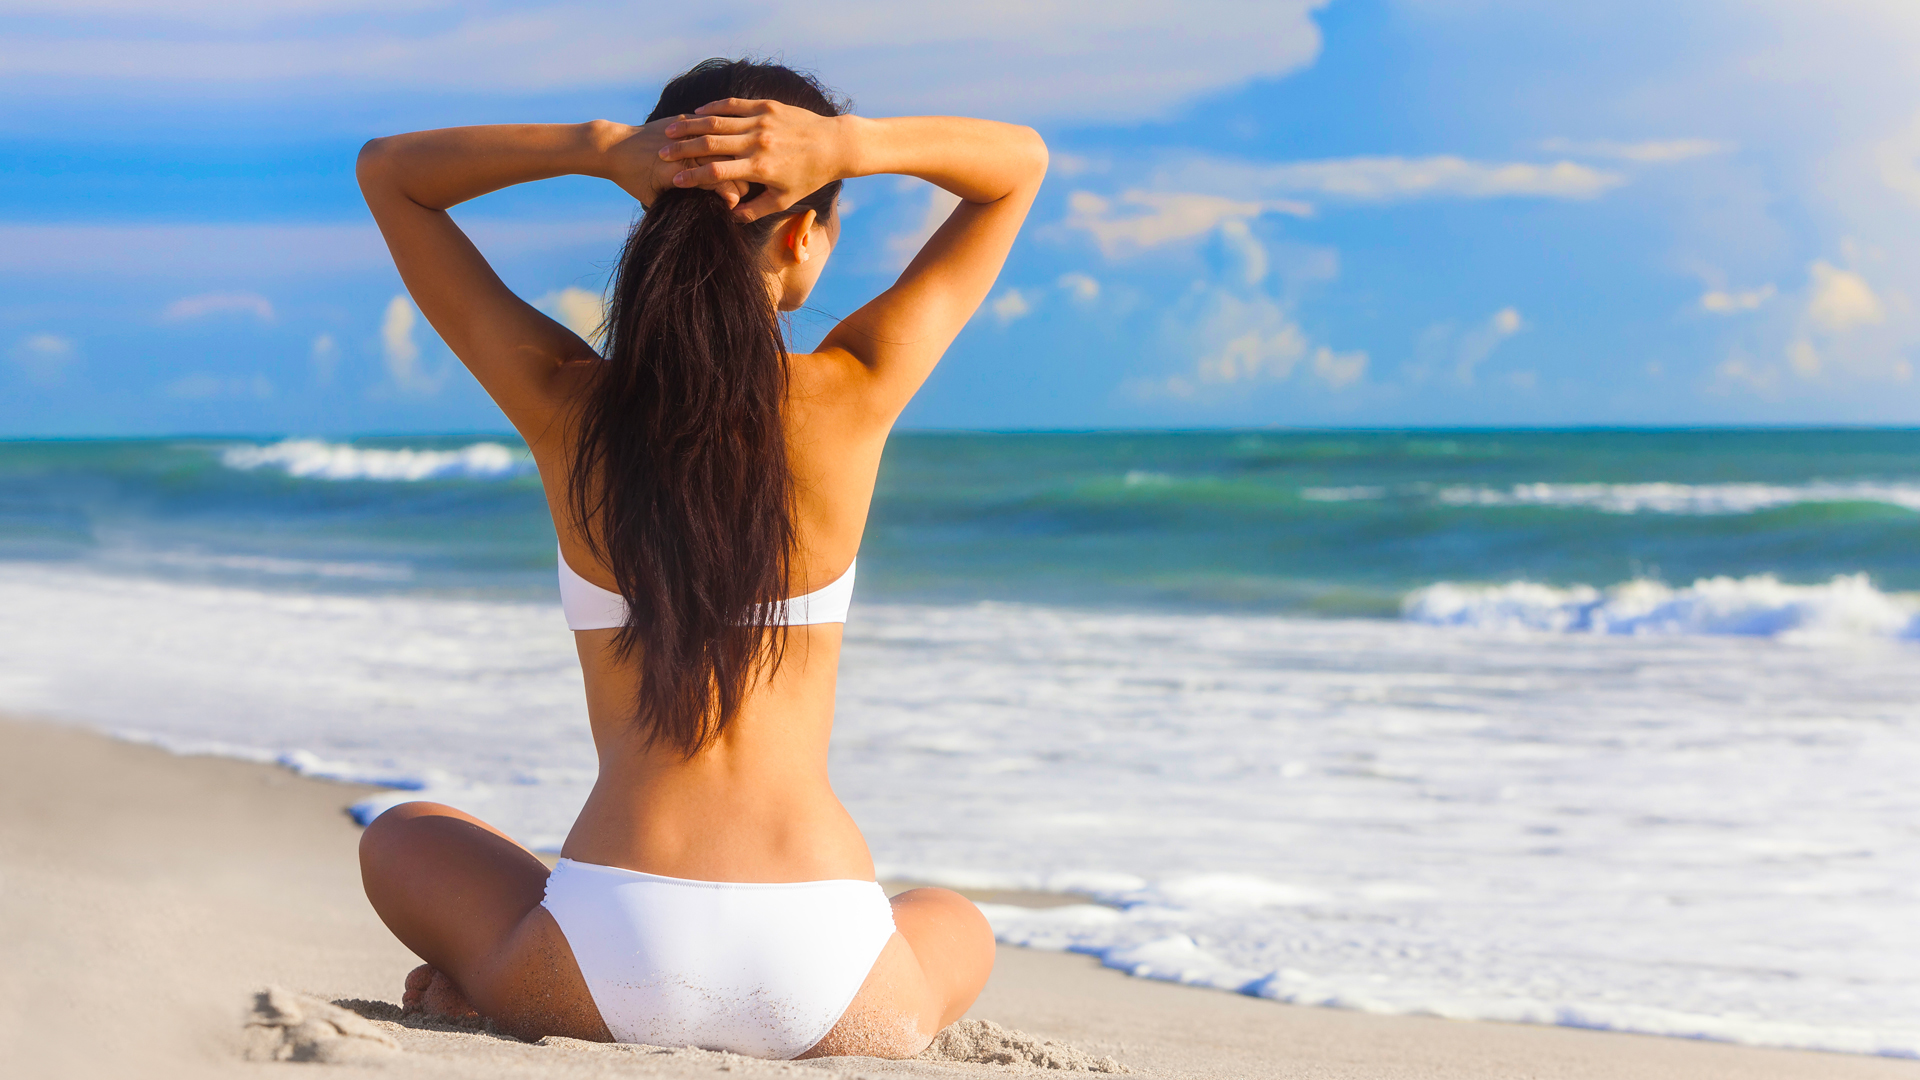 How to get the best results from indoor tanning beds